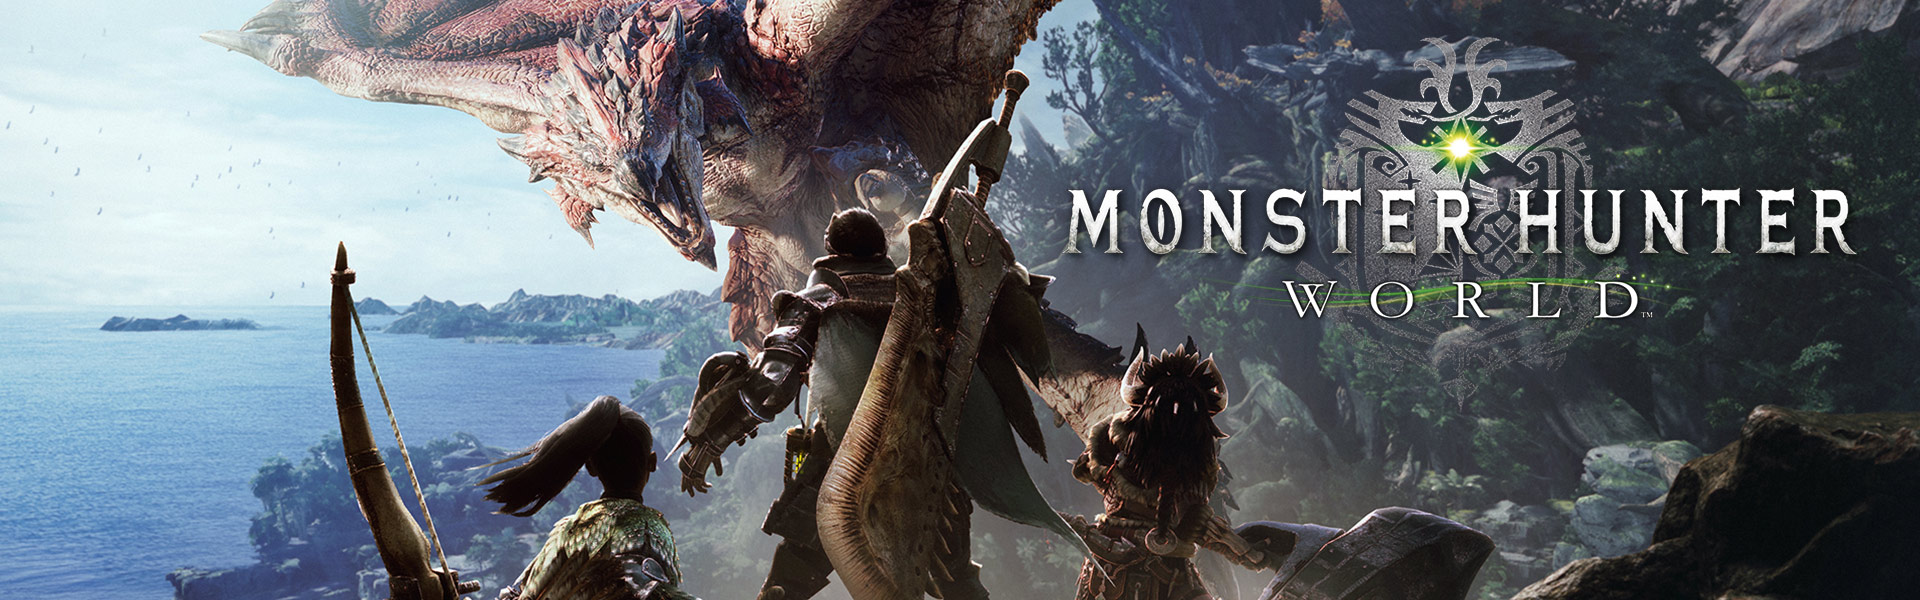 Monster Hunter World, personaggi di fronte a una bestia volante pronti al combattimento